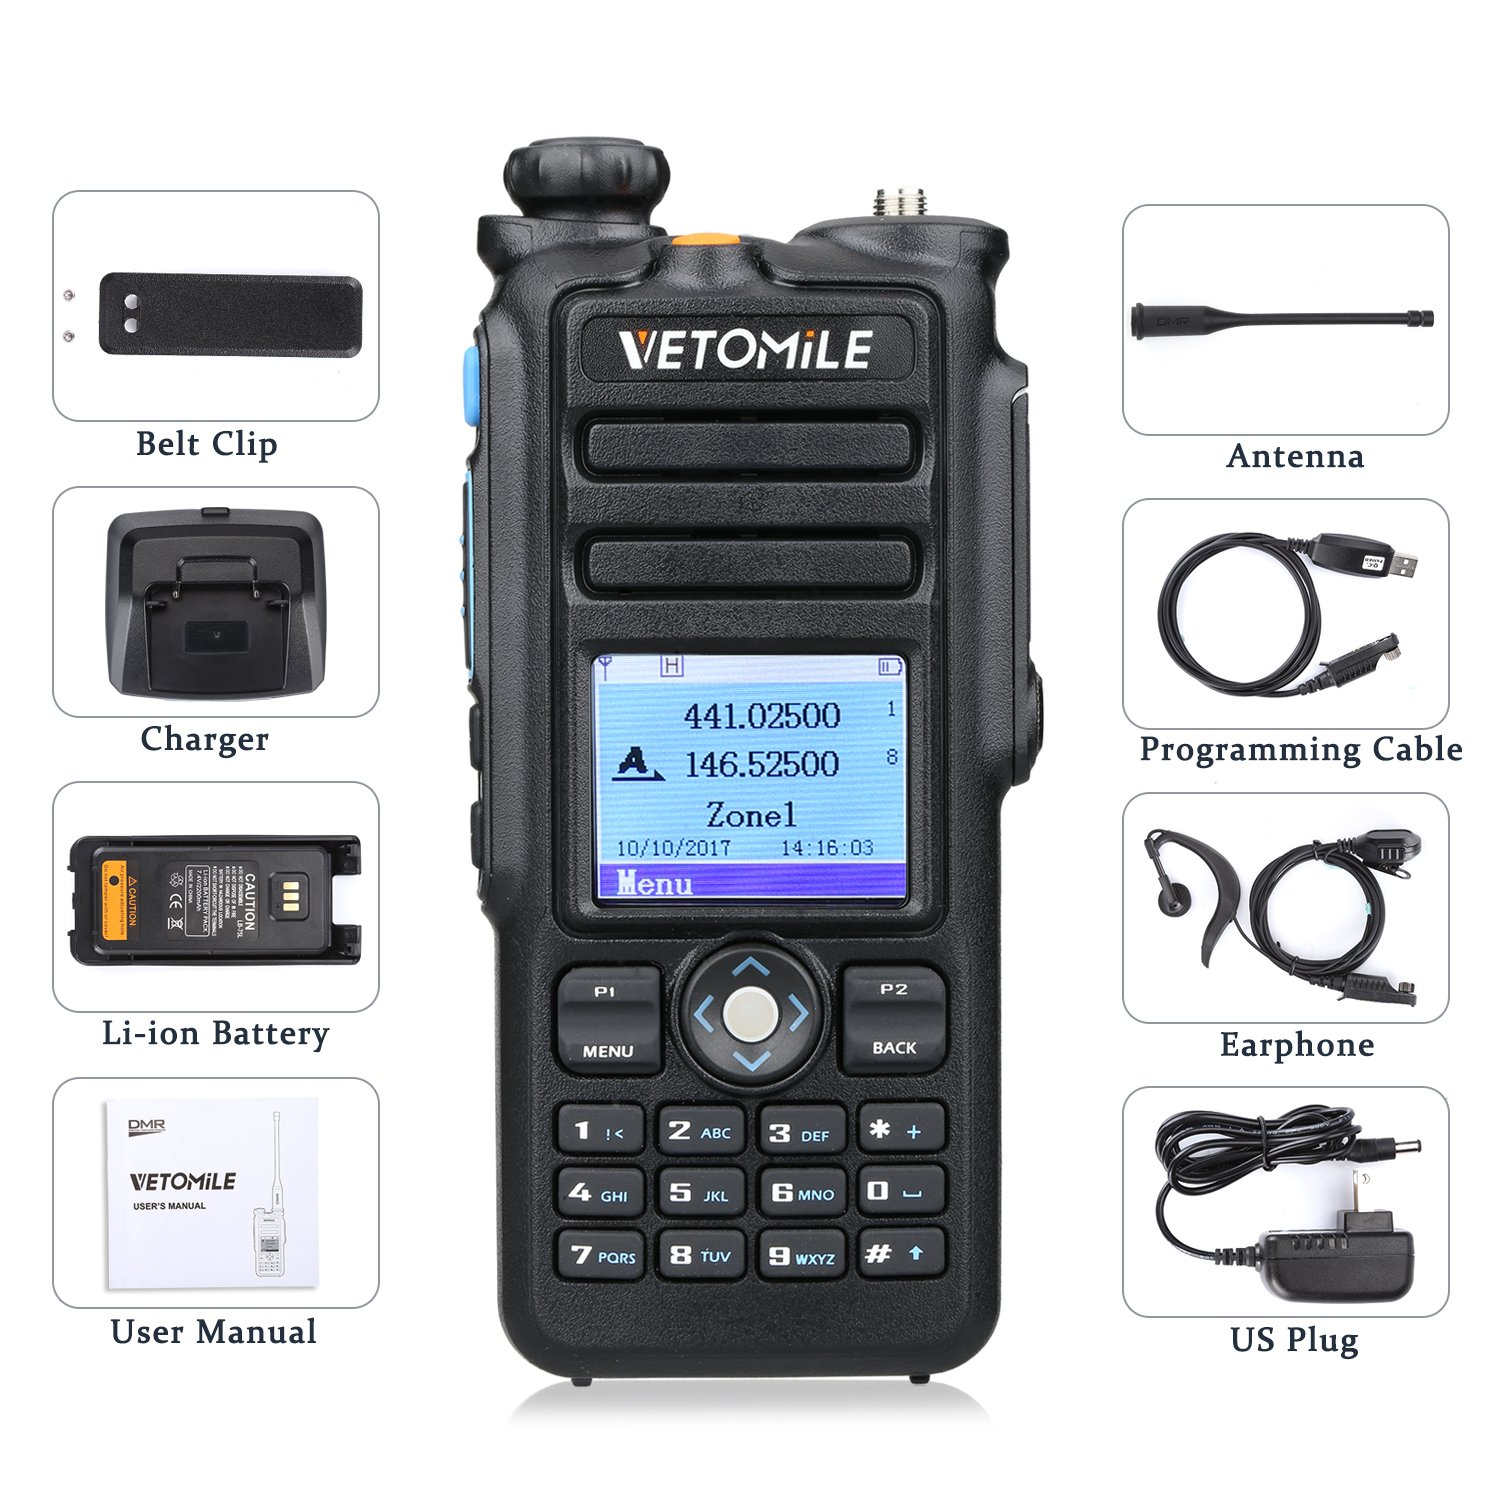 VETOMILE V-2017 Dual Band DMR Digital/Analog Two Way Radio 5W VHF 136-174MHZ & UHF 400-480MHz Walkie Talkie 3000 Channels IP67 Waterproof with GPS Function and Programming Cable by VETOMILE (Image #9)